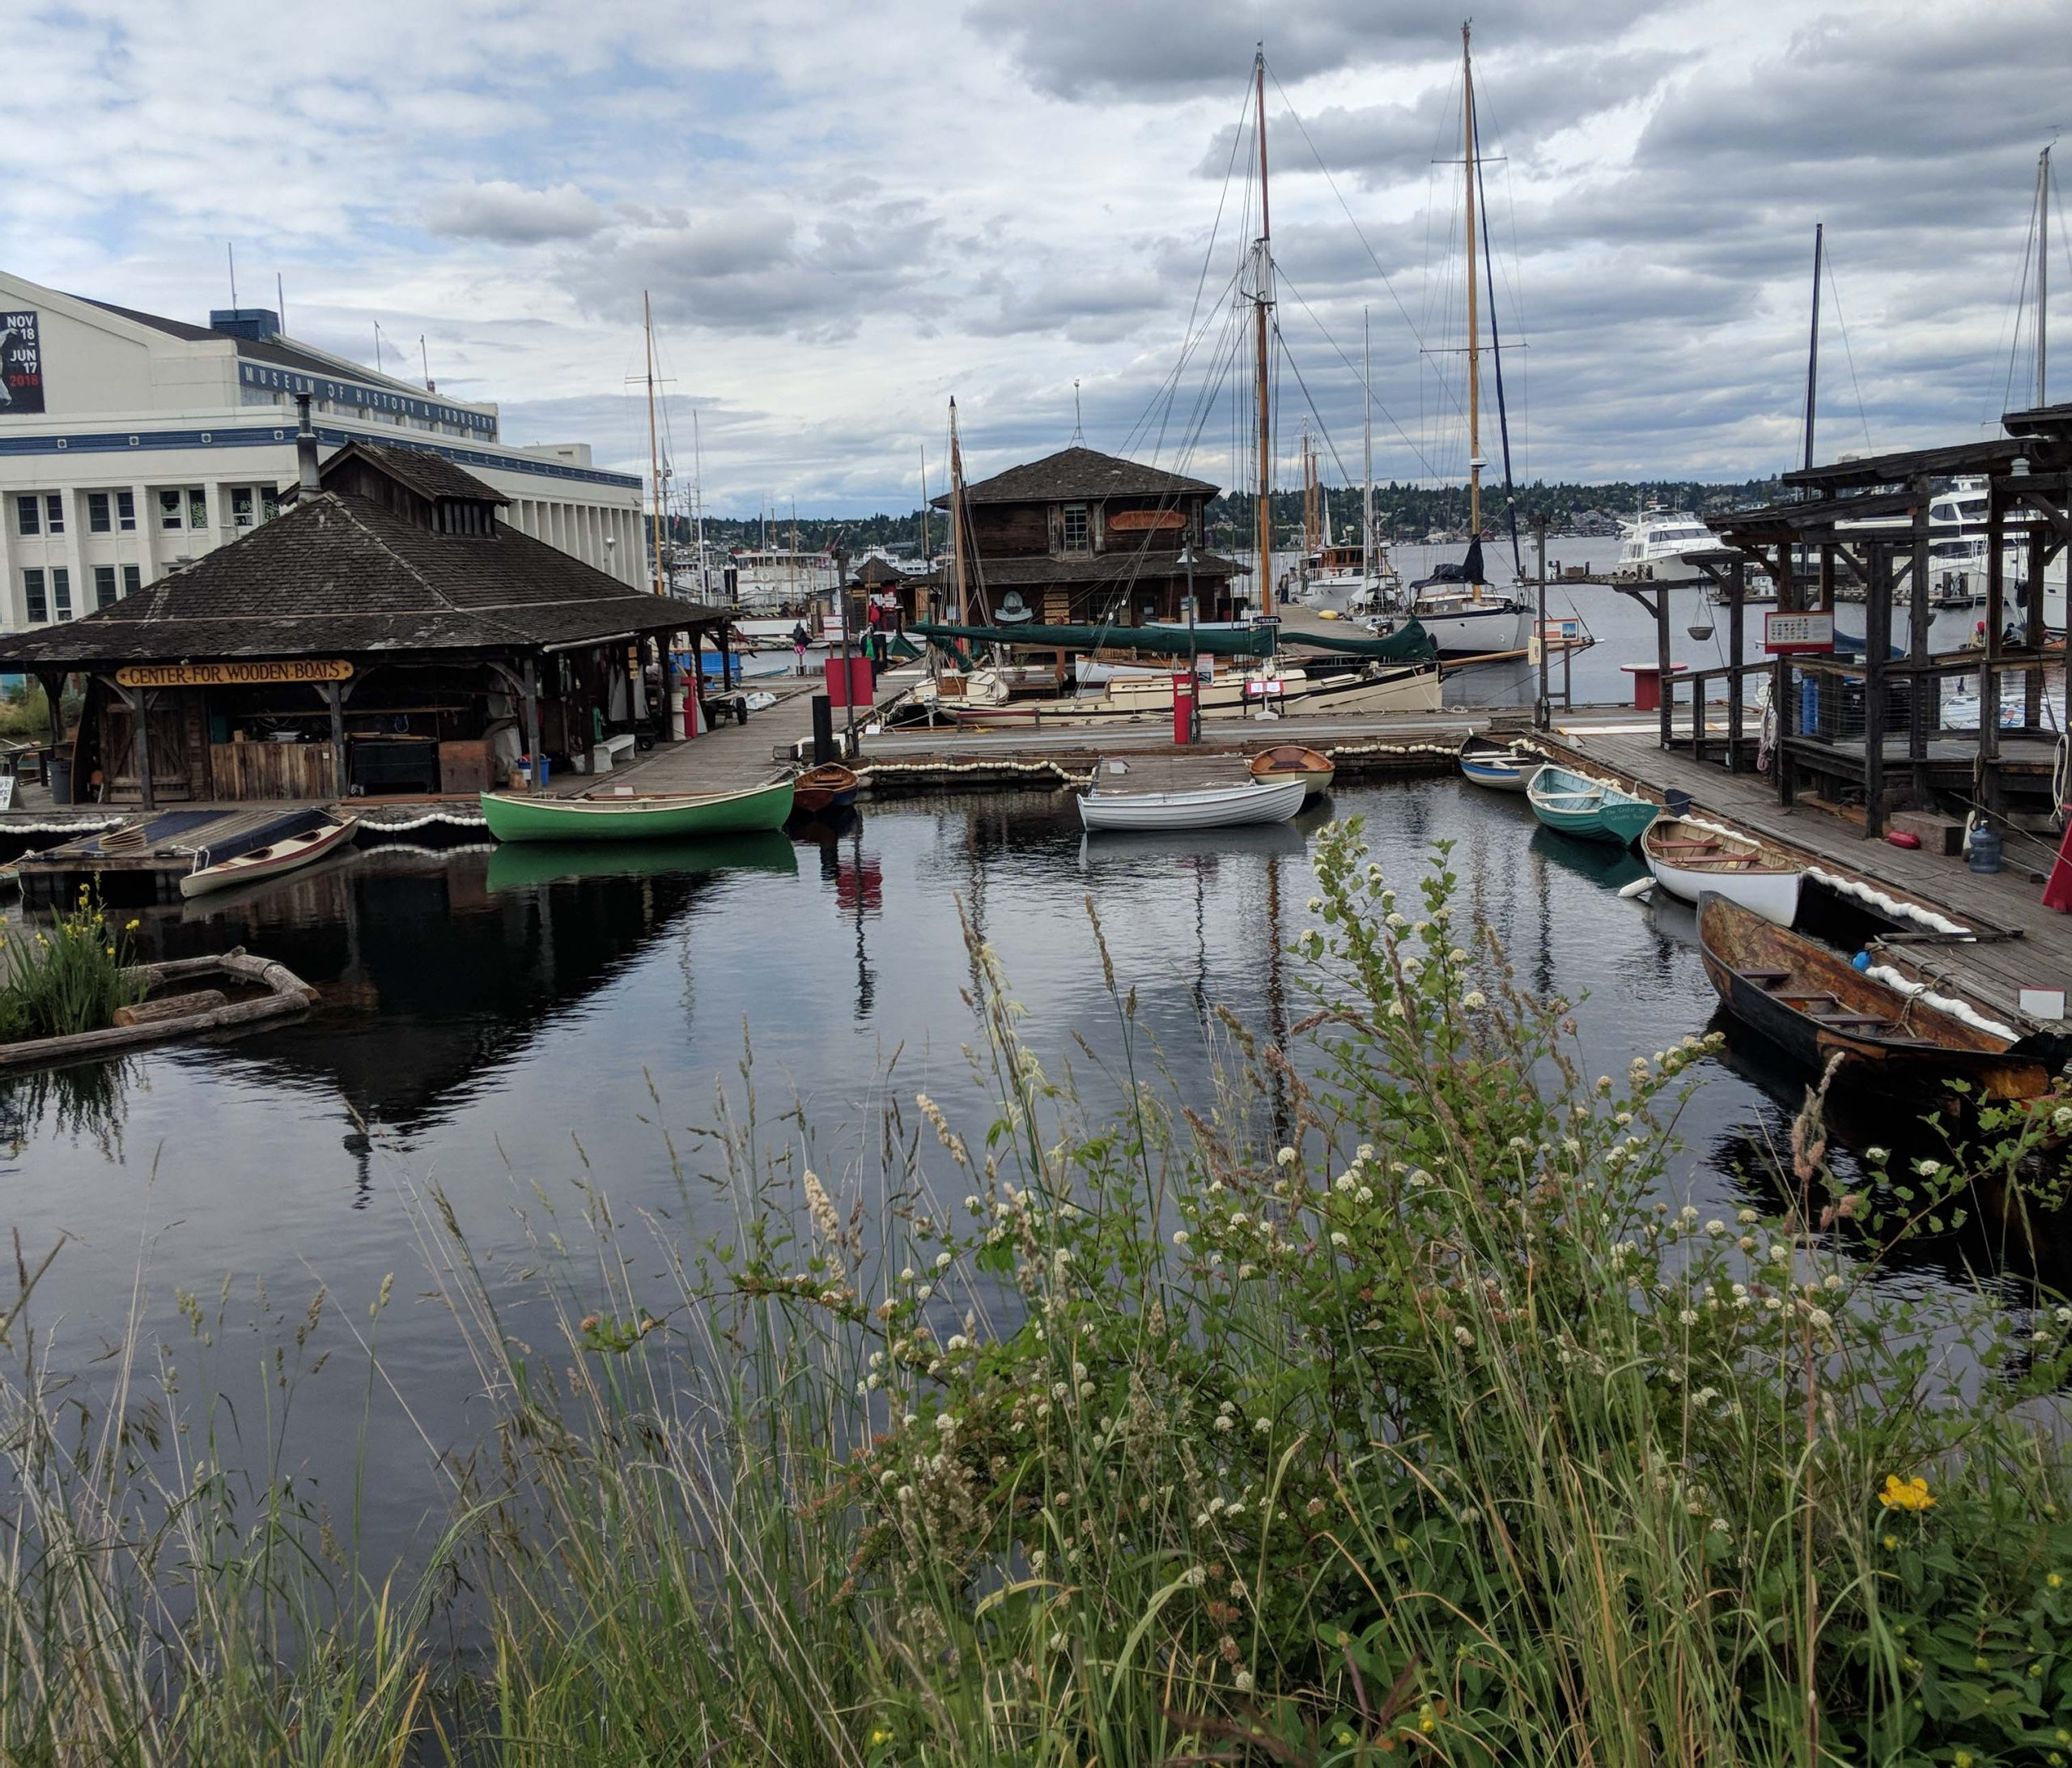 Slu's center for wooden boats featuring wood boats floating in calm waters.